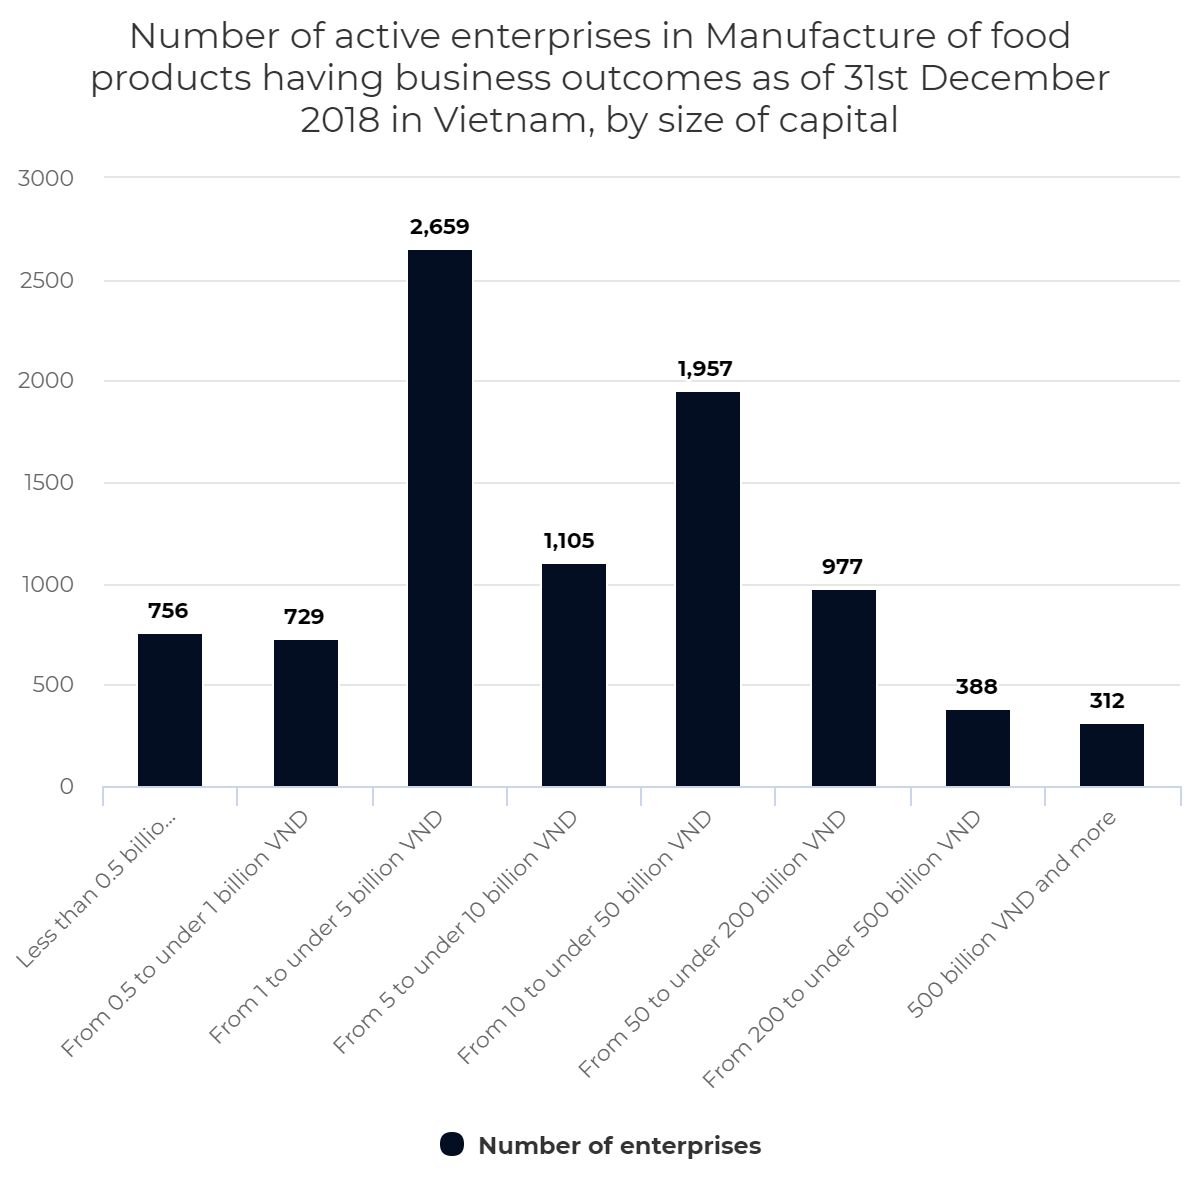 Number of active enterprises in Manufacture of food products, by size of capital, Vietnam, 2018